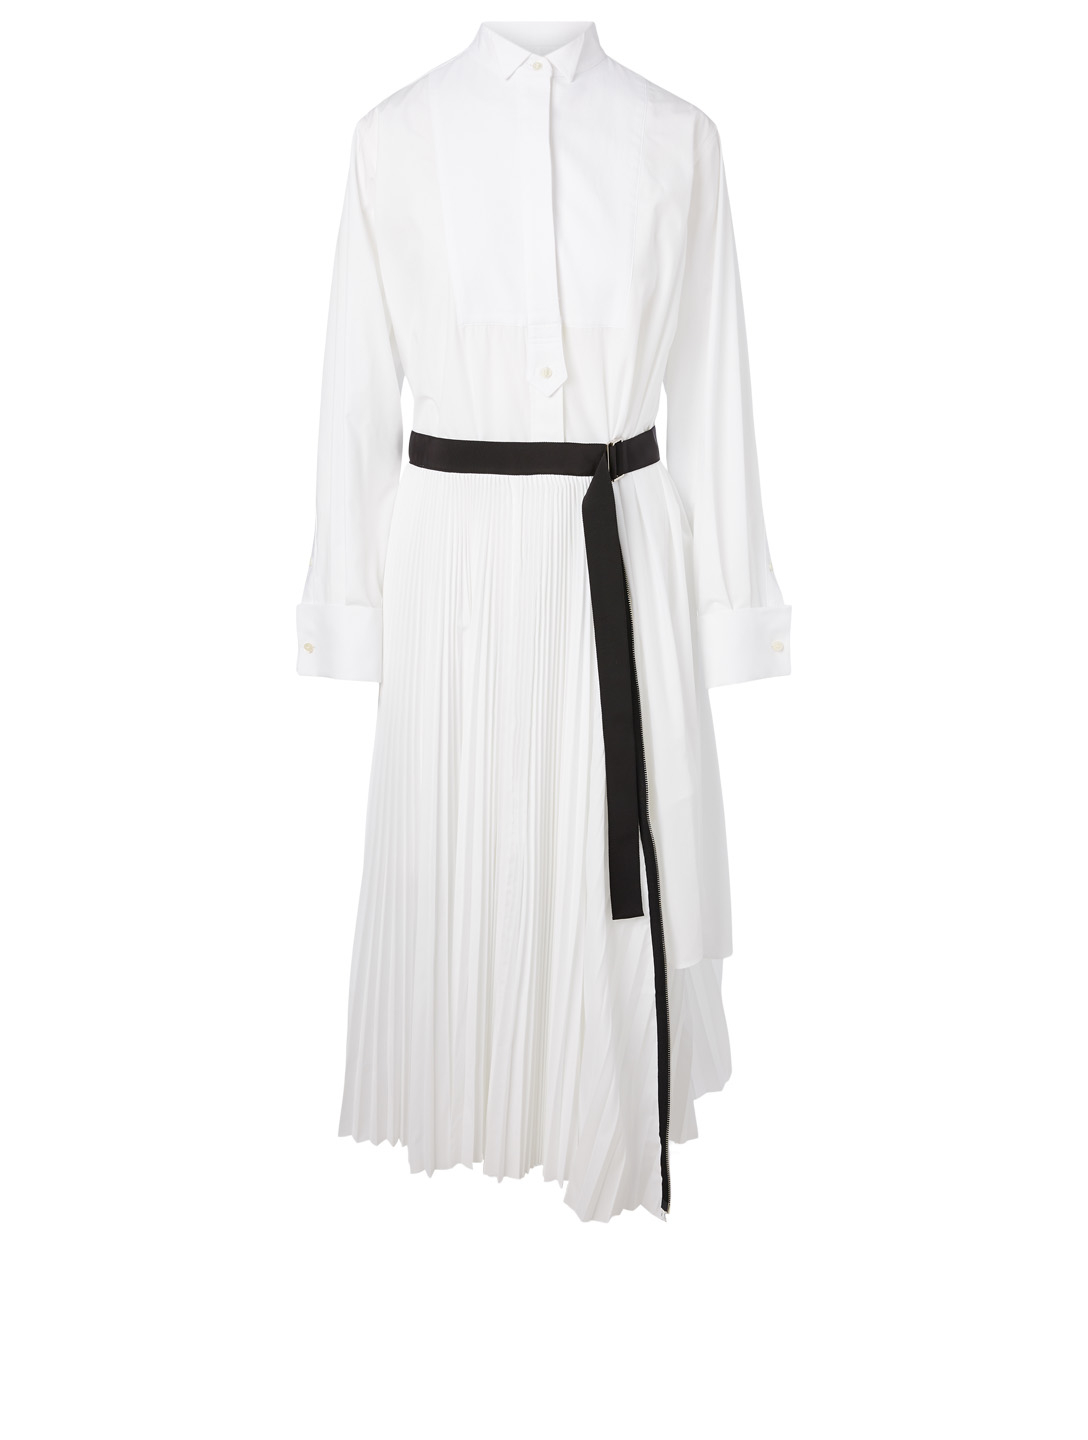 SACAI Cotton-Blend Midi Dress With Belt Women's White